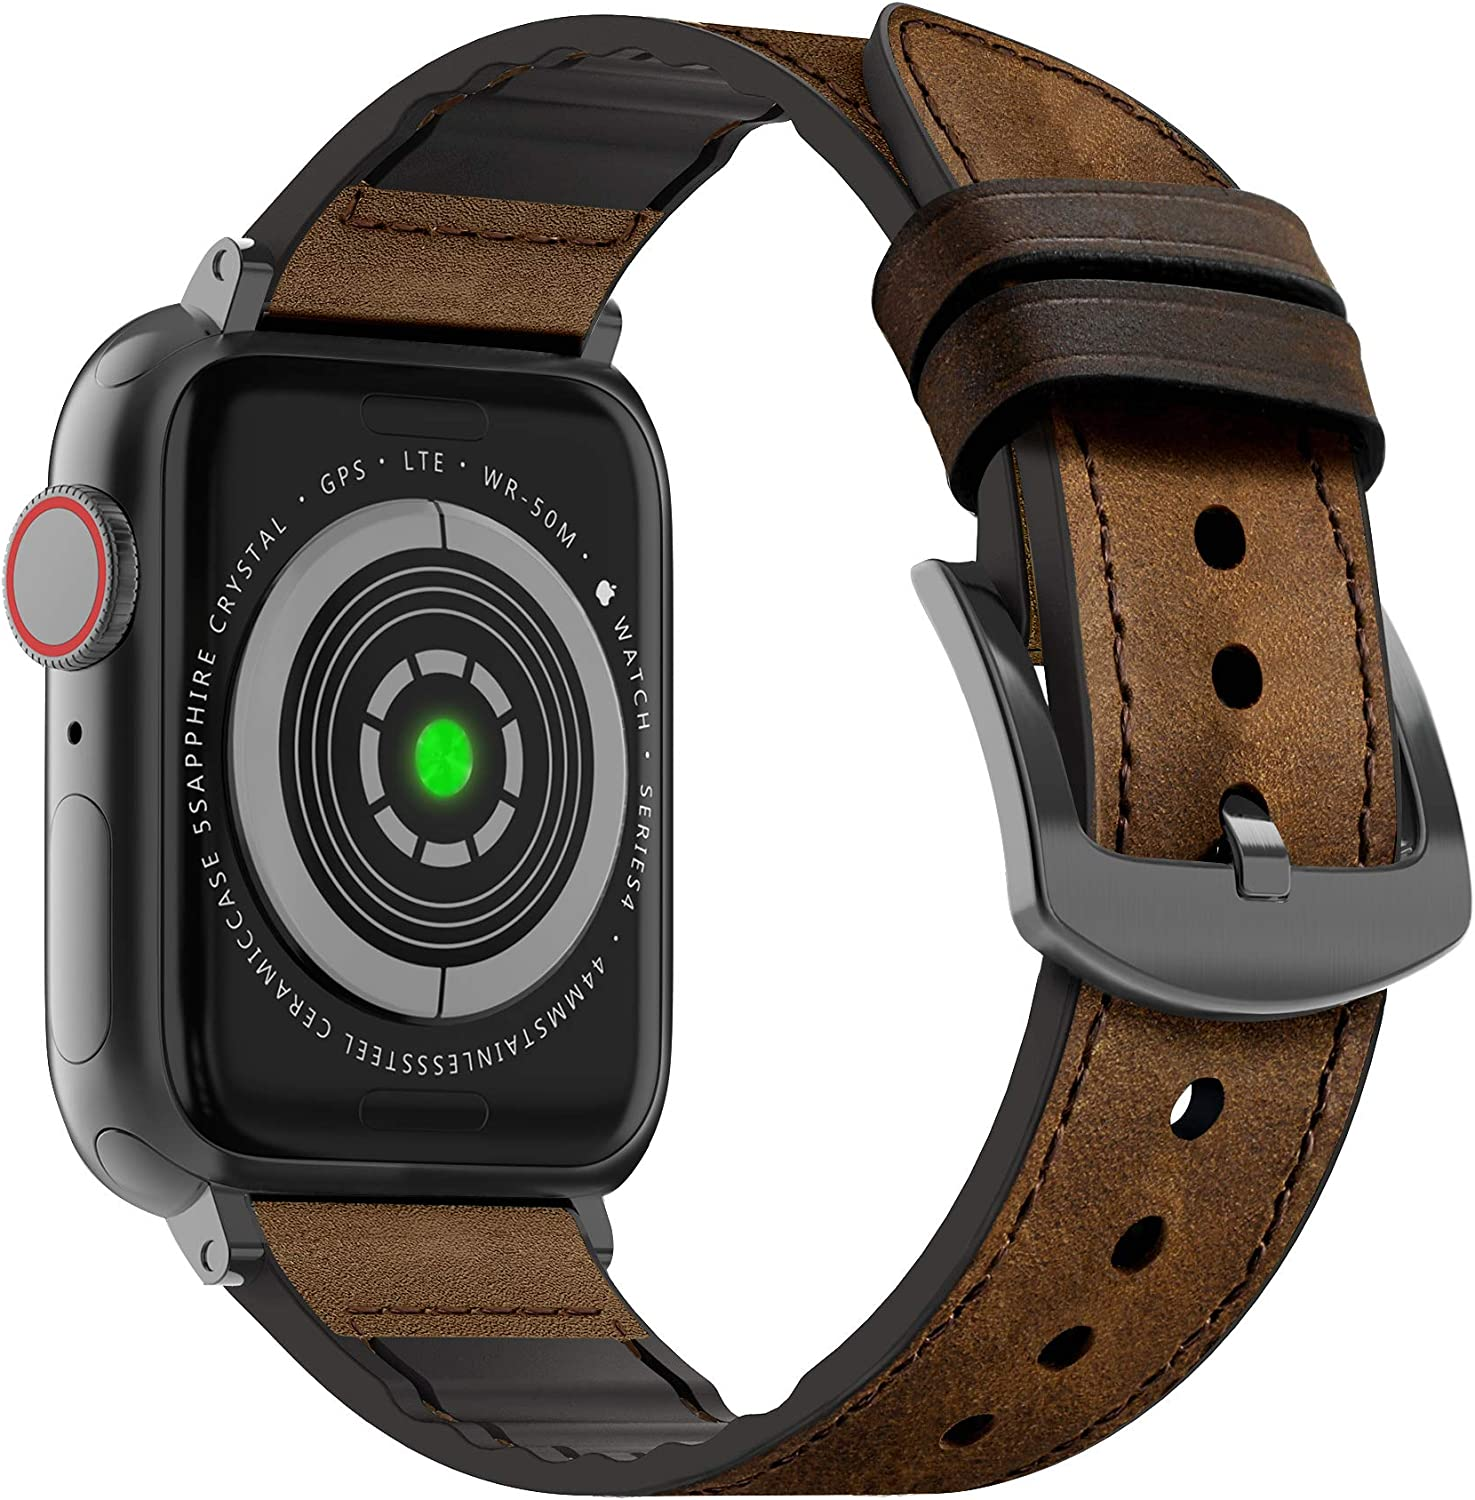 MARGE PLUS Compatible Apple Watch Band 40mm 38mm, Sweatproof Hybrid Genuine Leather and Silicone Sports Watch Band Replacement for iWatch SE Series 6 5 4 3 2 1, Coffee Brown/Space Gray